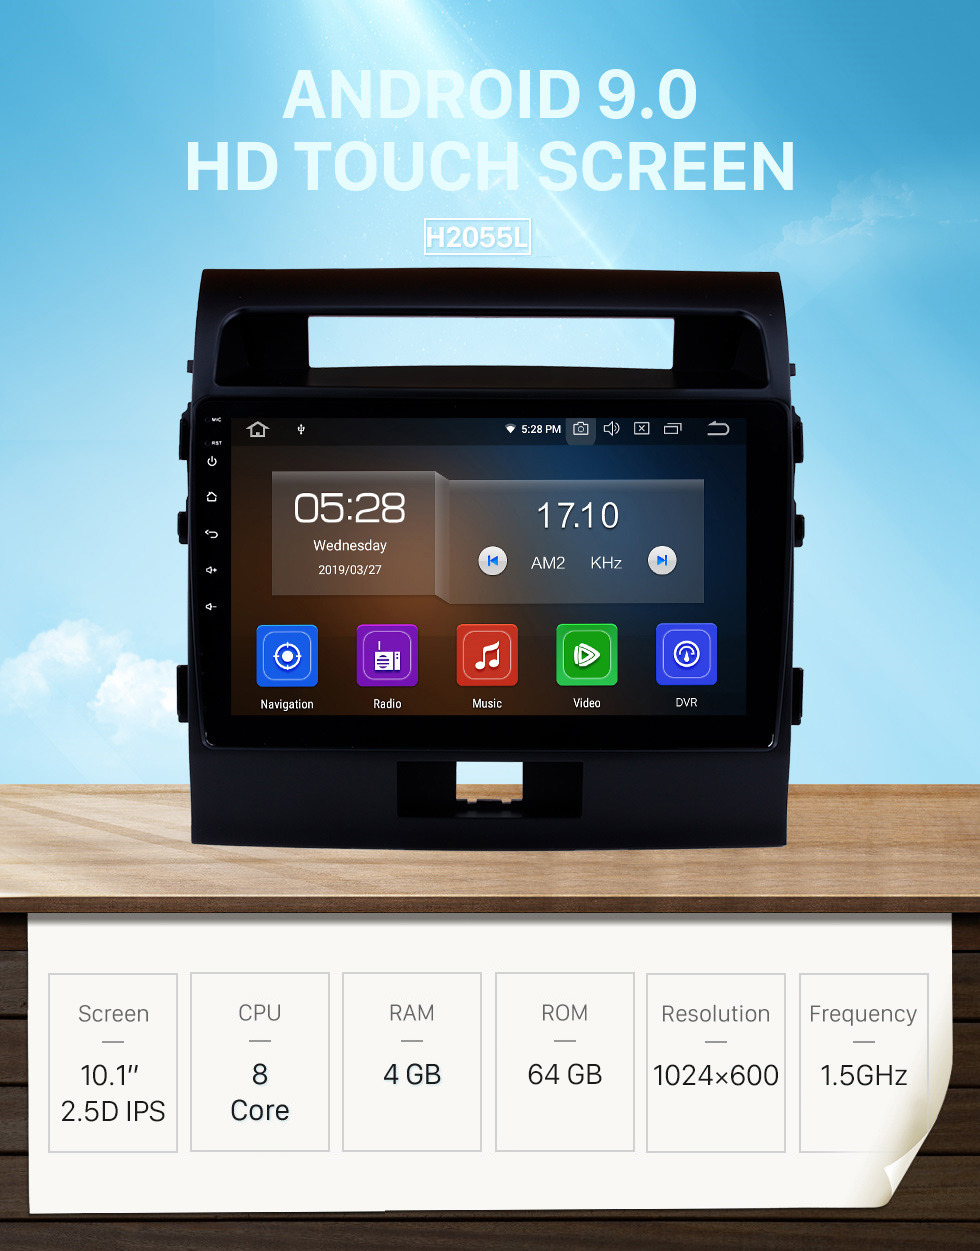 Seicane OEM 10.1 inch HD TouchScreen GPS Navigation System Android 9.0 for 2007-2017 TOYOTA LAND CRUISER Radio Support Car Stereo Bluetooth Music Mirror Link OBD2 3G/4G WiFi Video Backup Camera